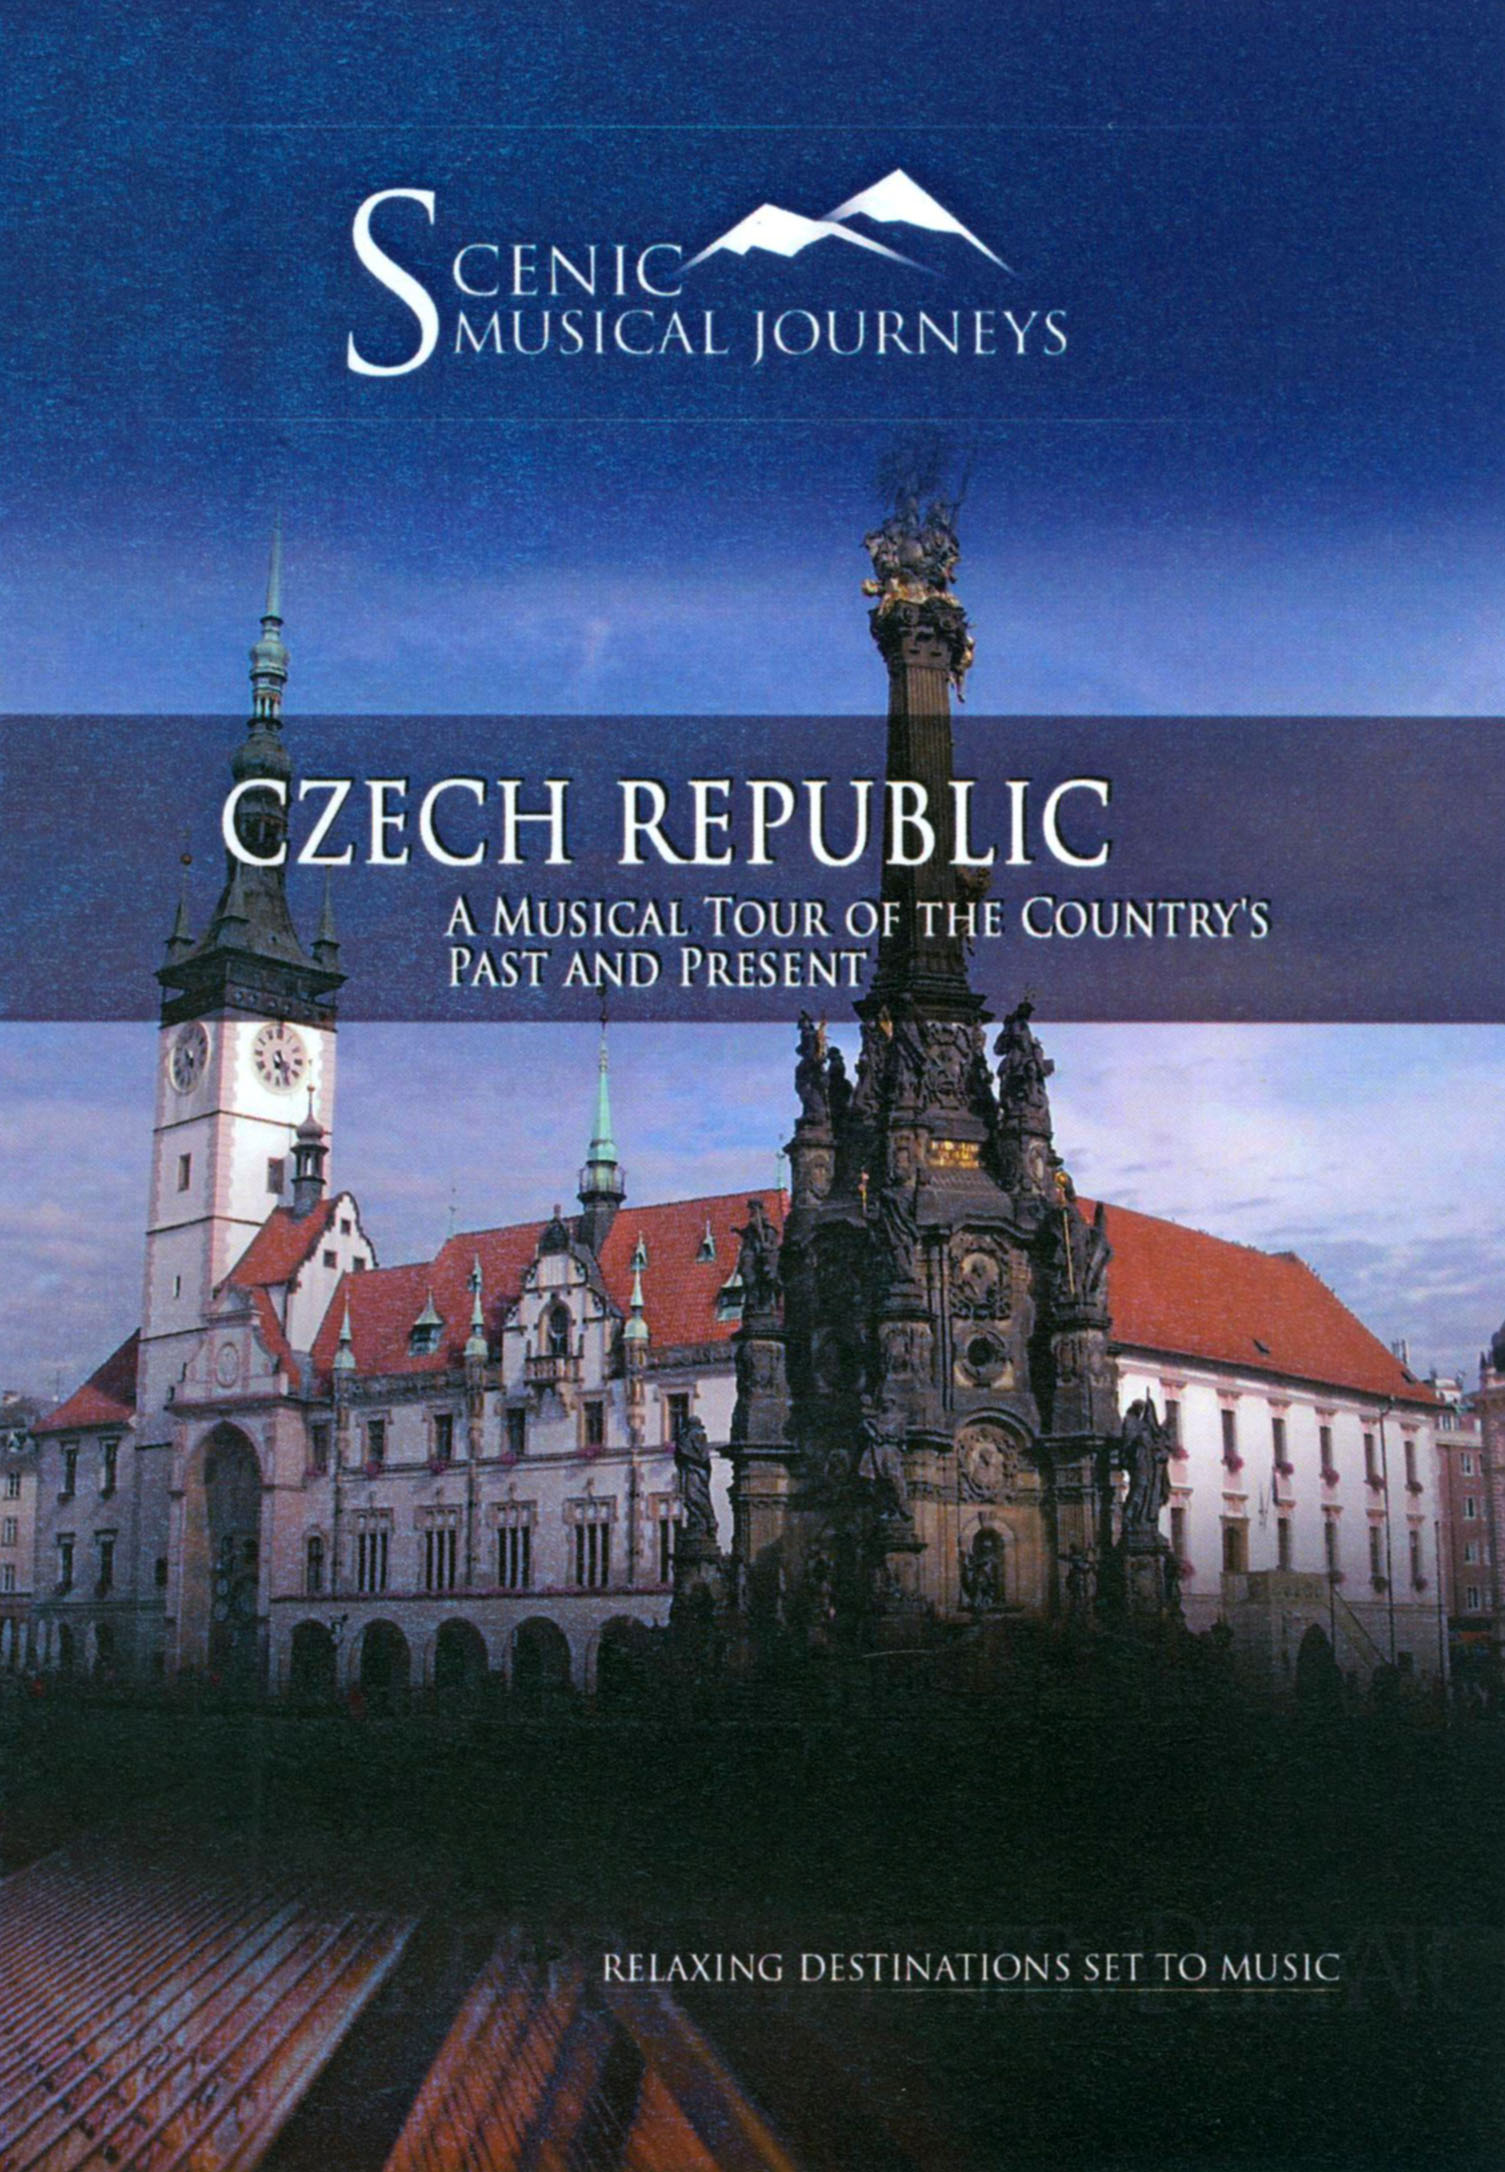 Scenic Musical Journeys: Czech Republic - A Musical Tour of the Country's Past and Present